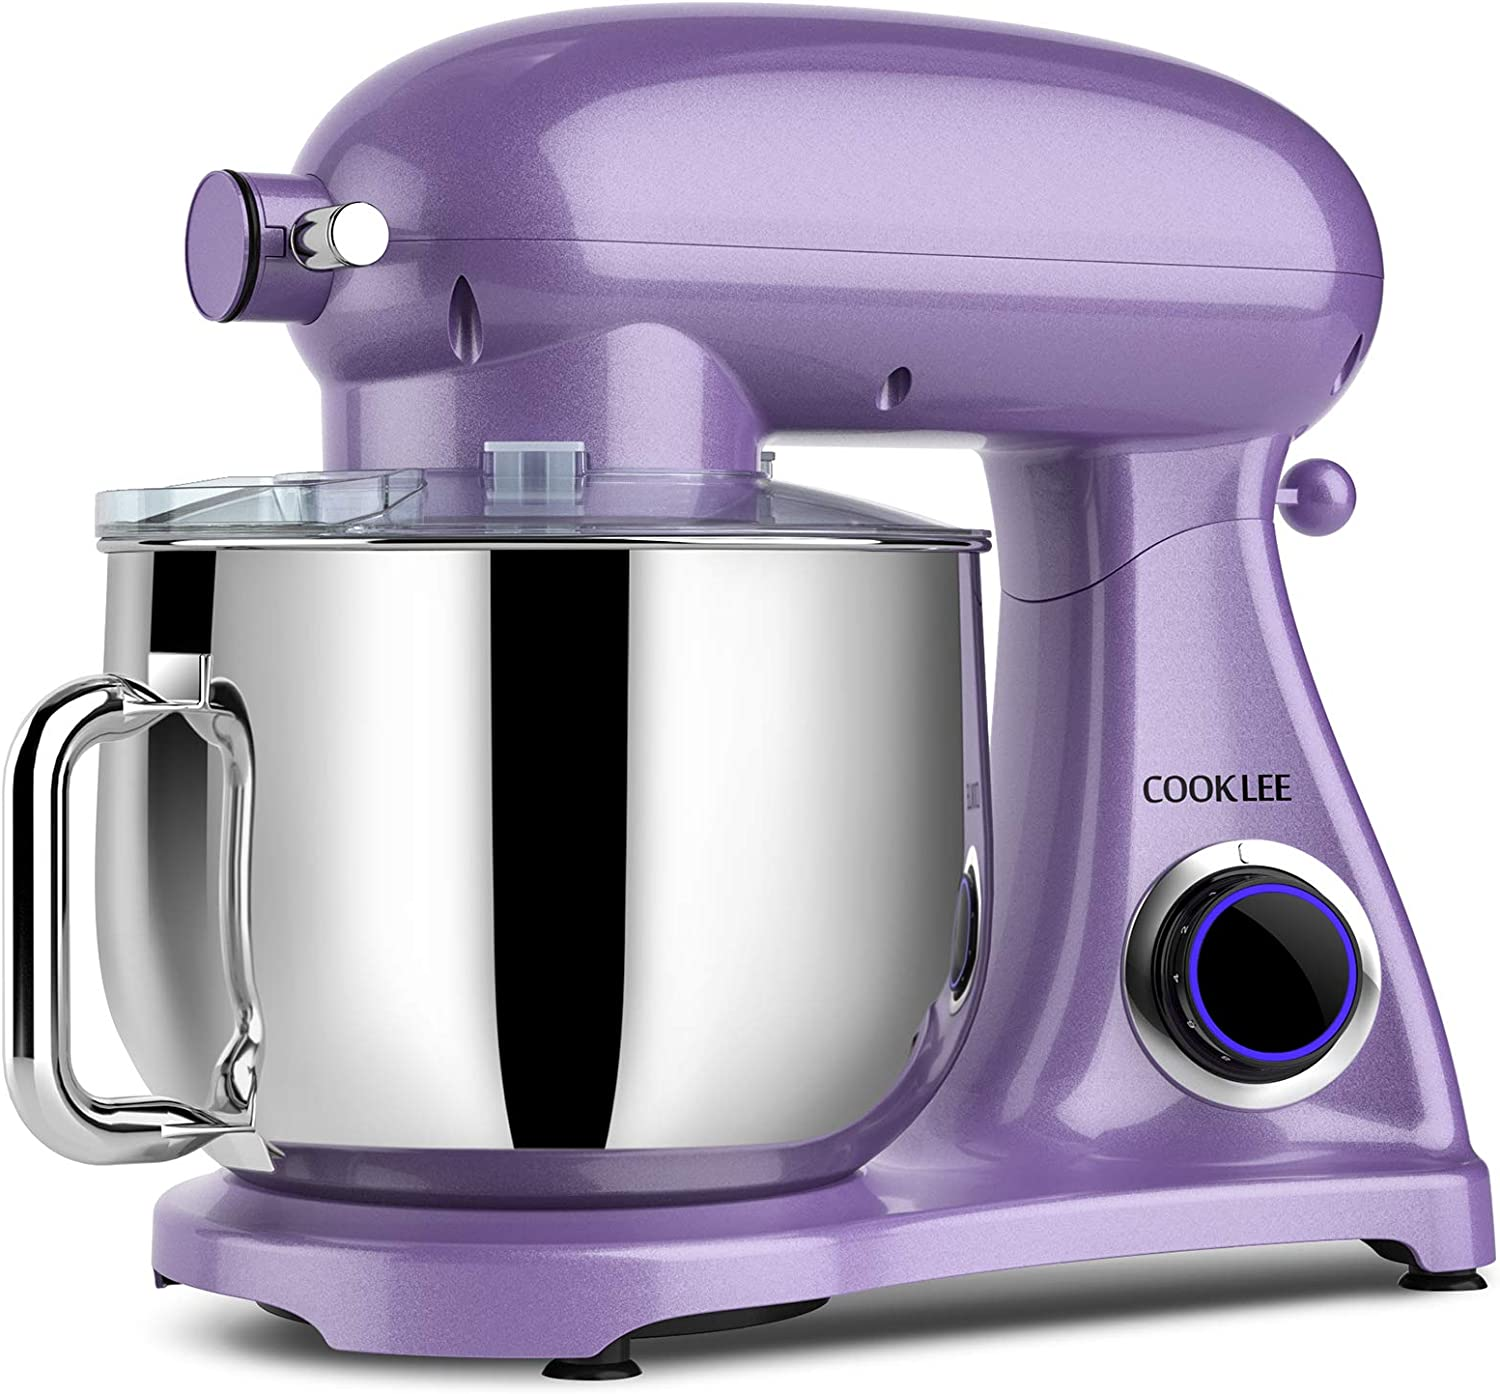 COOKLEE Stand Mixer, 800W 8.5-Qt. Kitchen Mixer with Dishwasher-Safe Dough Hooks, Flat Beaters, Whisk & Pouring Shield, SM-1522NM, Lavender